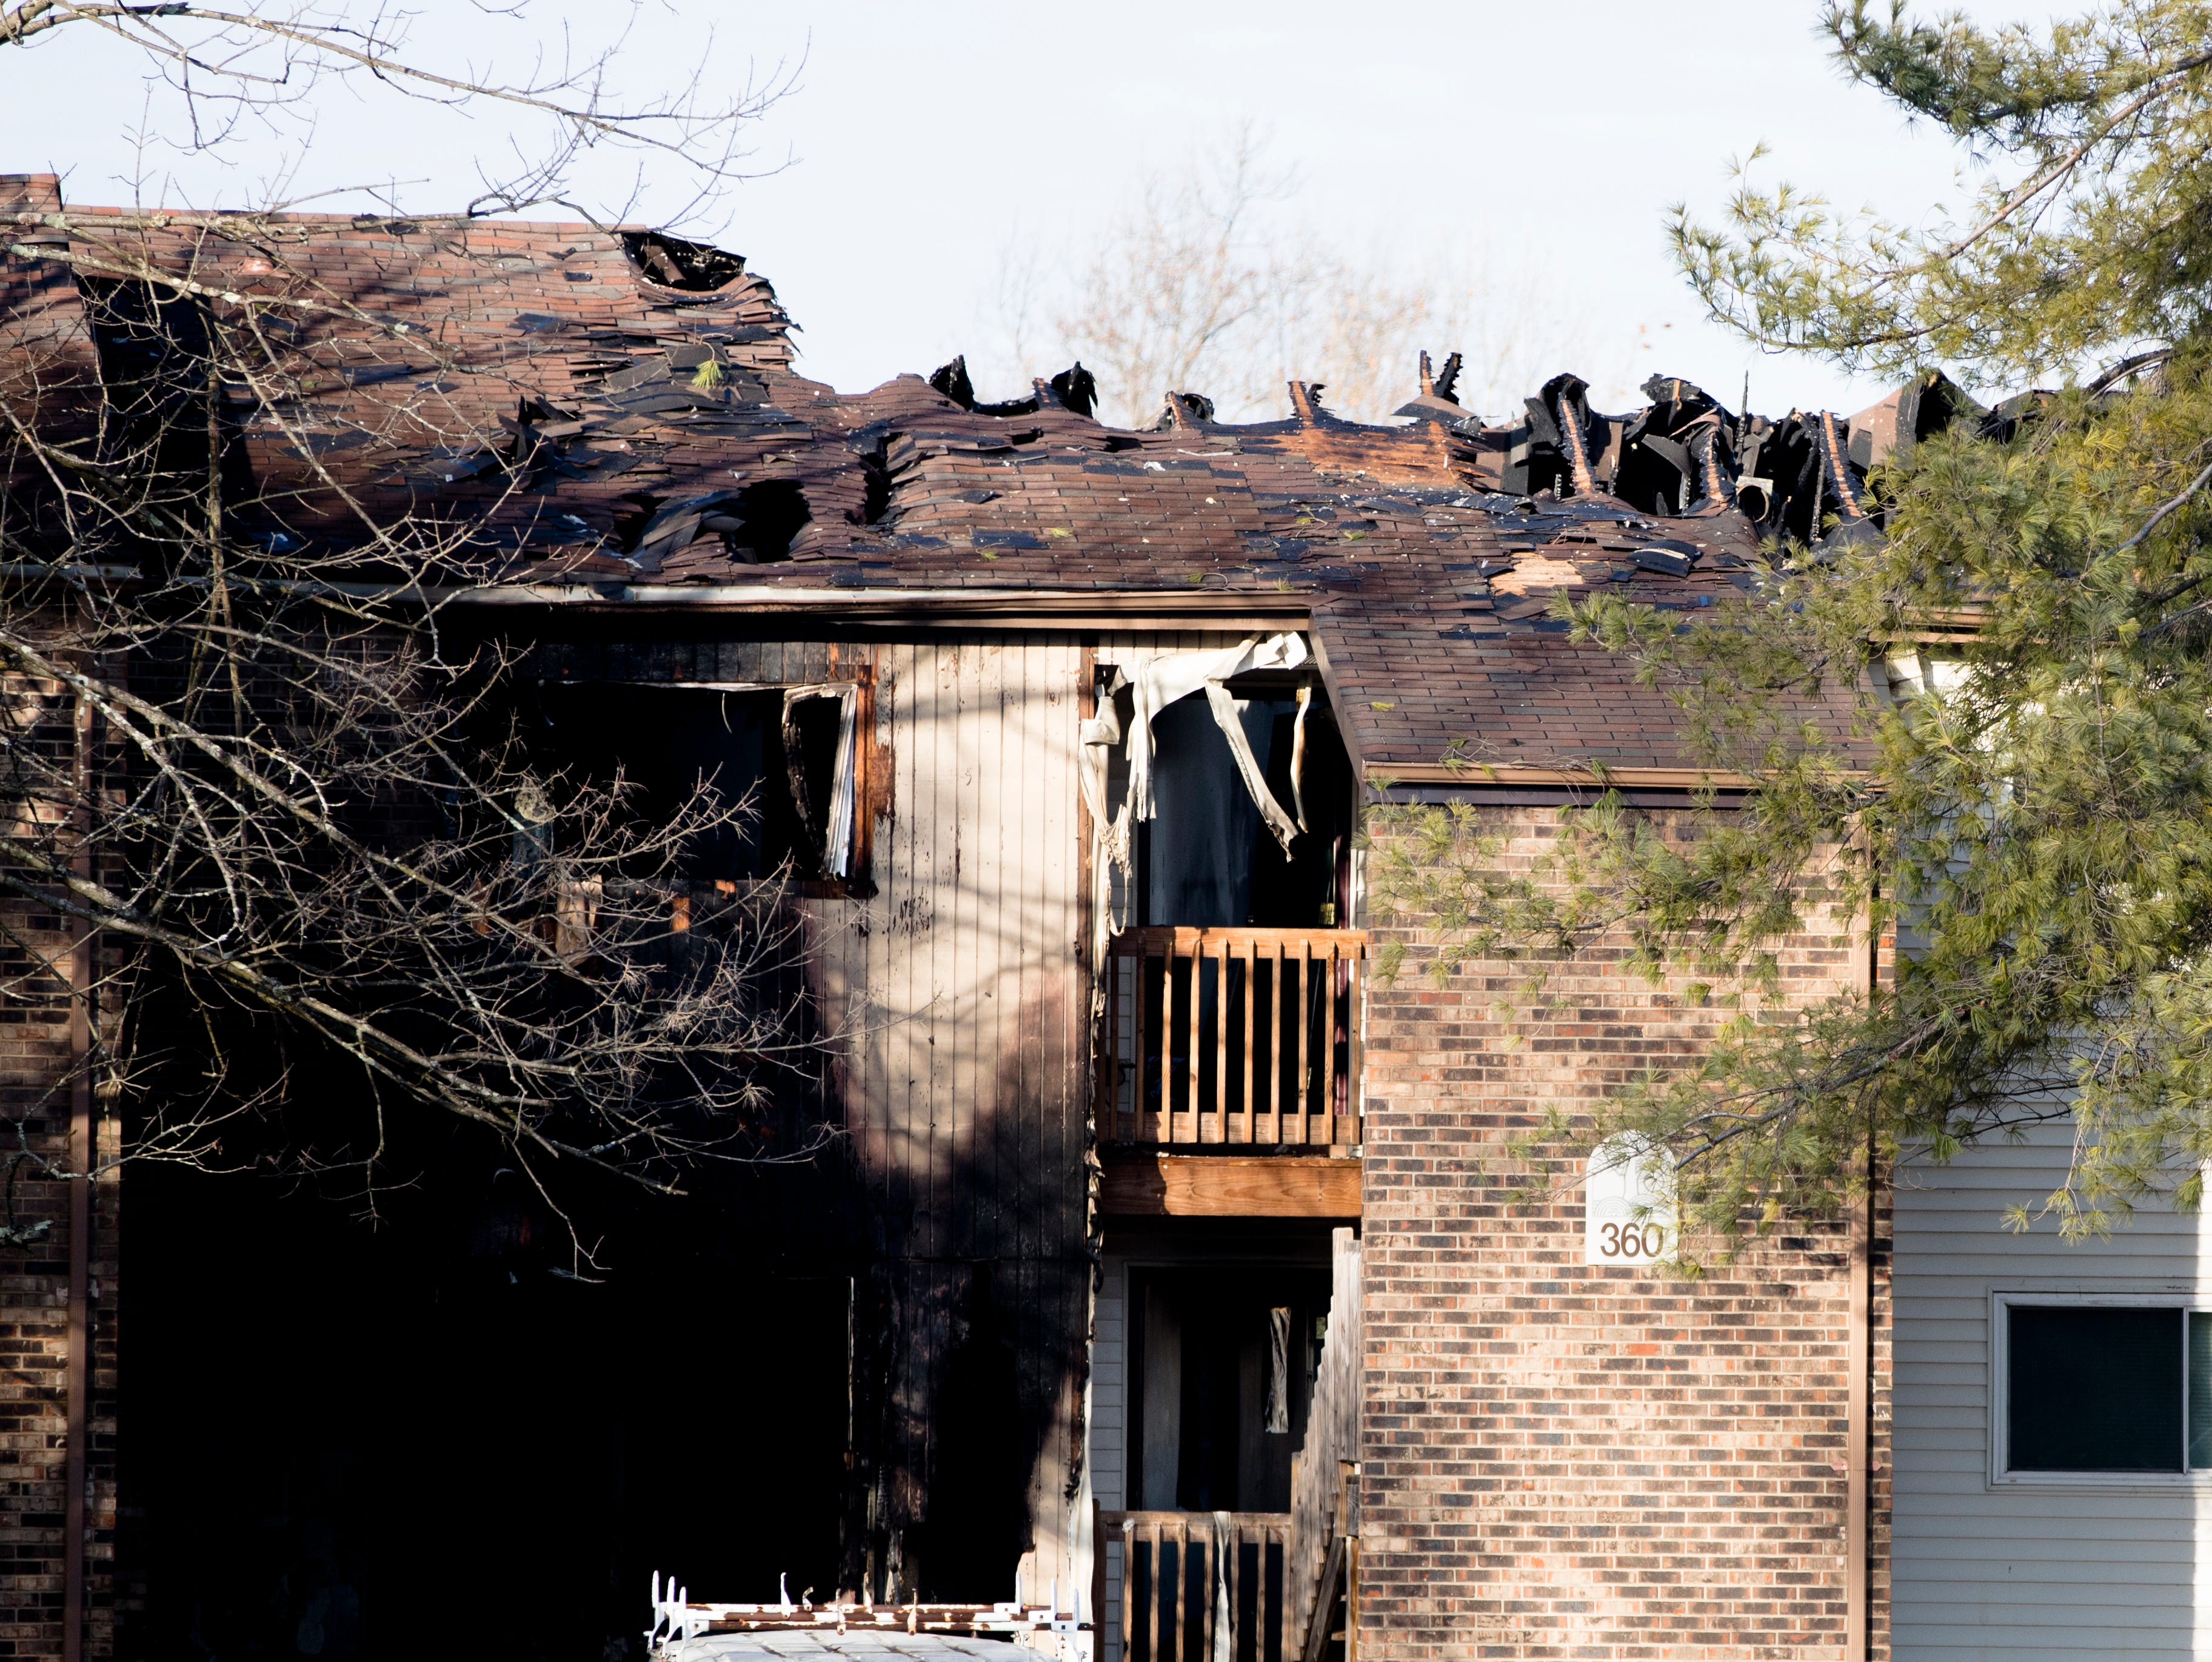 A view of  fire damage on the apartment on Monday, Feb. 4, 2019, in Clermont County after it was damaged in a fire that occurred during a police standoff on Saturday. Detective Bill Brewer was a 20-year veteran of the Sheriff's Office and was injured on the scene by gunfire before the fire was set to the apartment. He died from his wounds at Anderson Mercy Hospital. Wade Edward Winn, 23, was taken into custody by police Feb. 3, 2019, as the suspect in deadly overnight standoff that resulted in Clermont County Sheriff's Office deputy Bill Brewer and the fire that destroyed Buchanan's apartment as well as others.